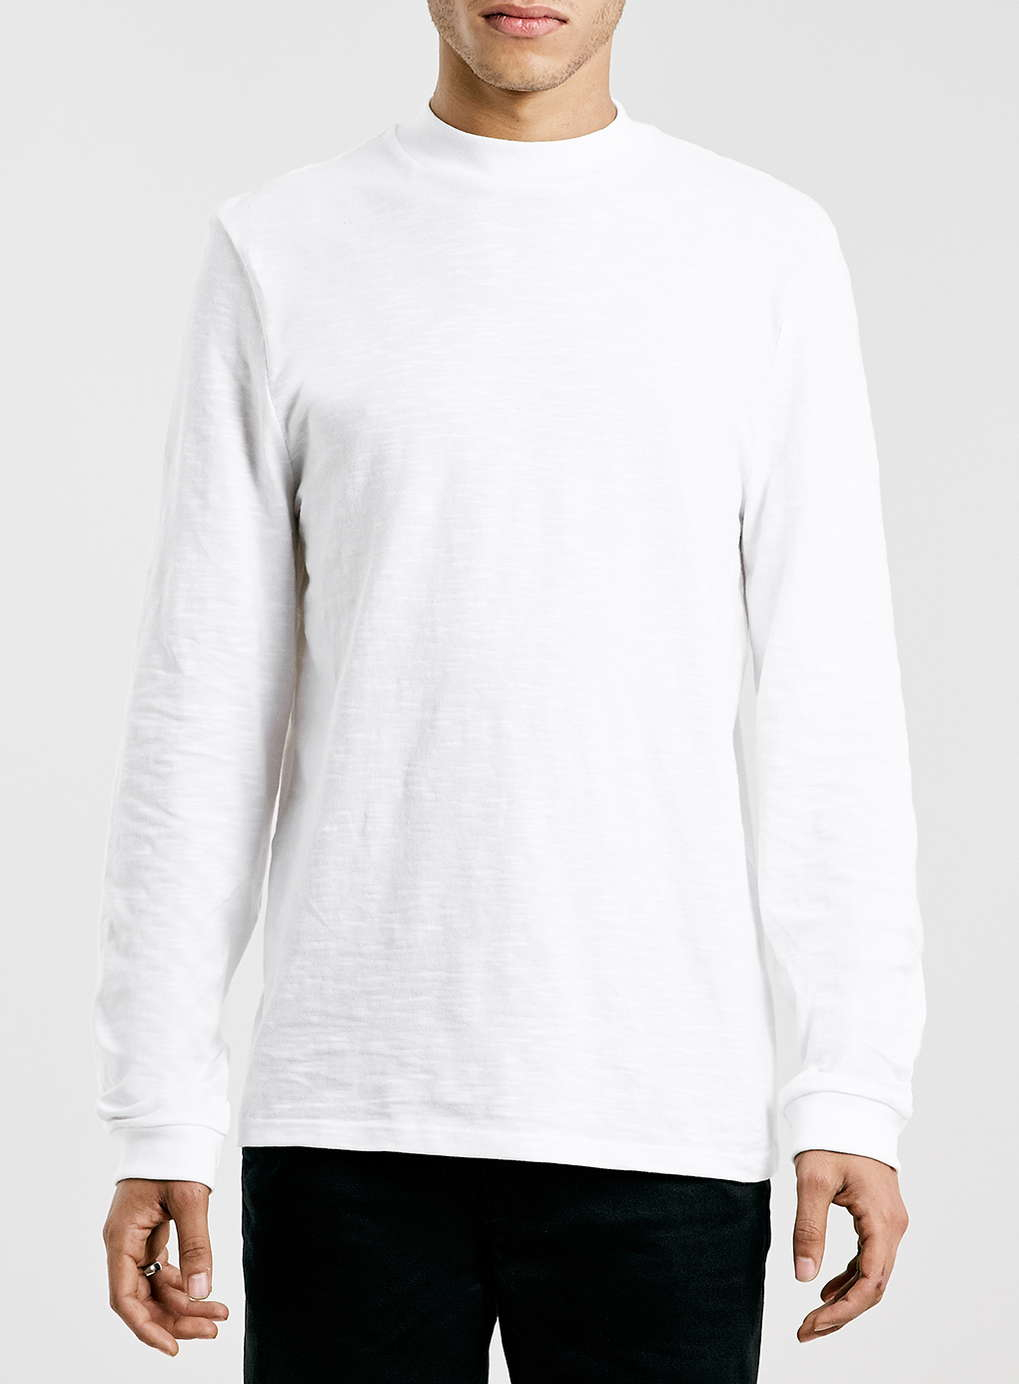 Topman White Slubby Turtle Neck Long Sleeve T-shirt in ...